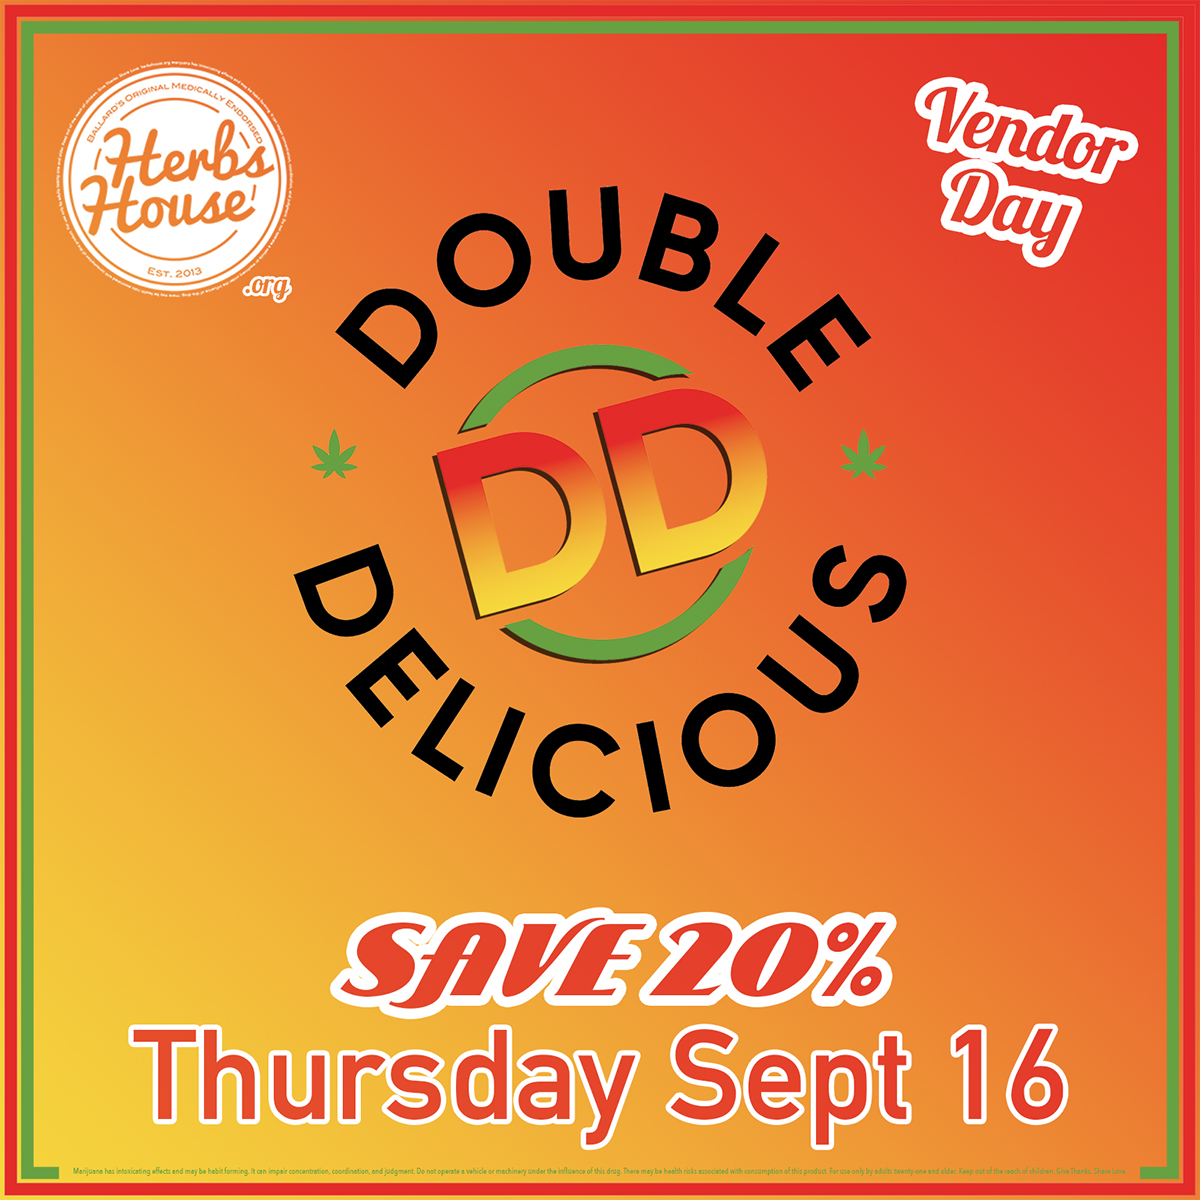 Double Delicious SAVE 20% Sept 16